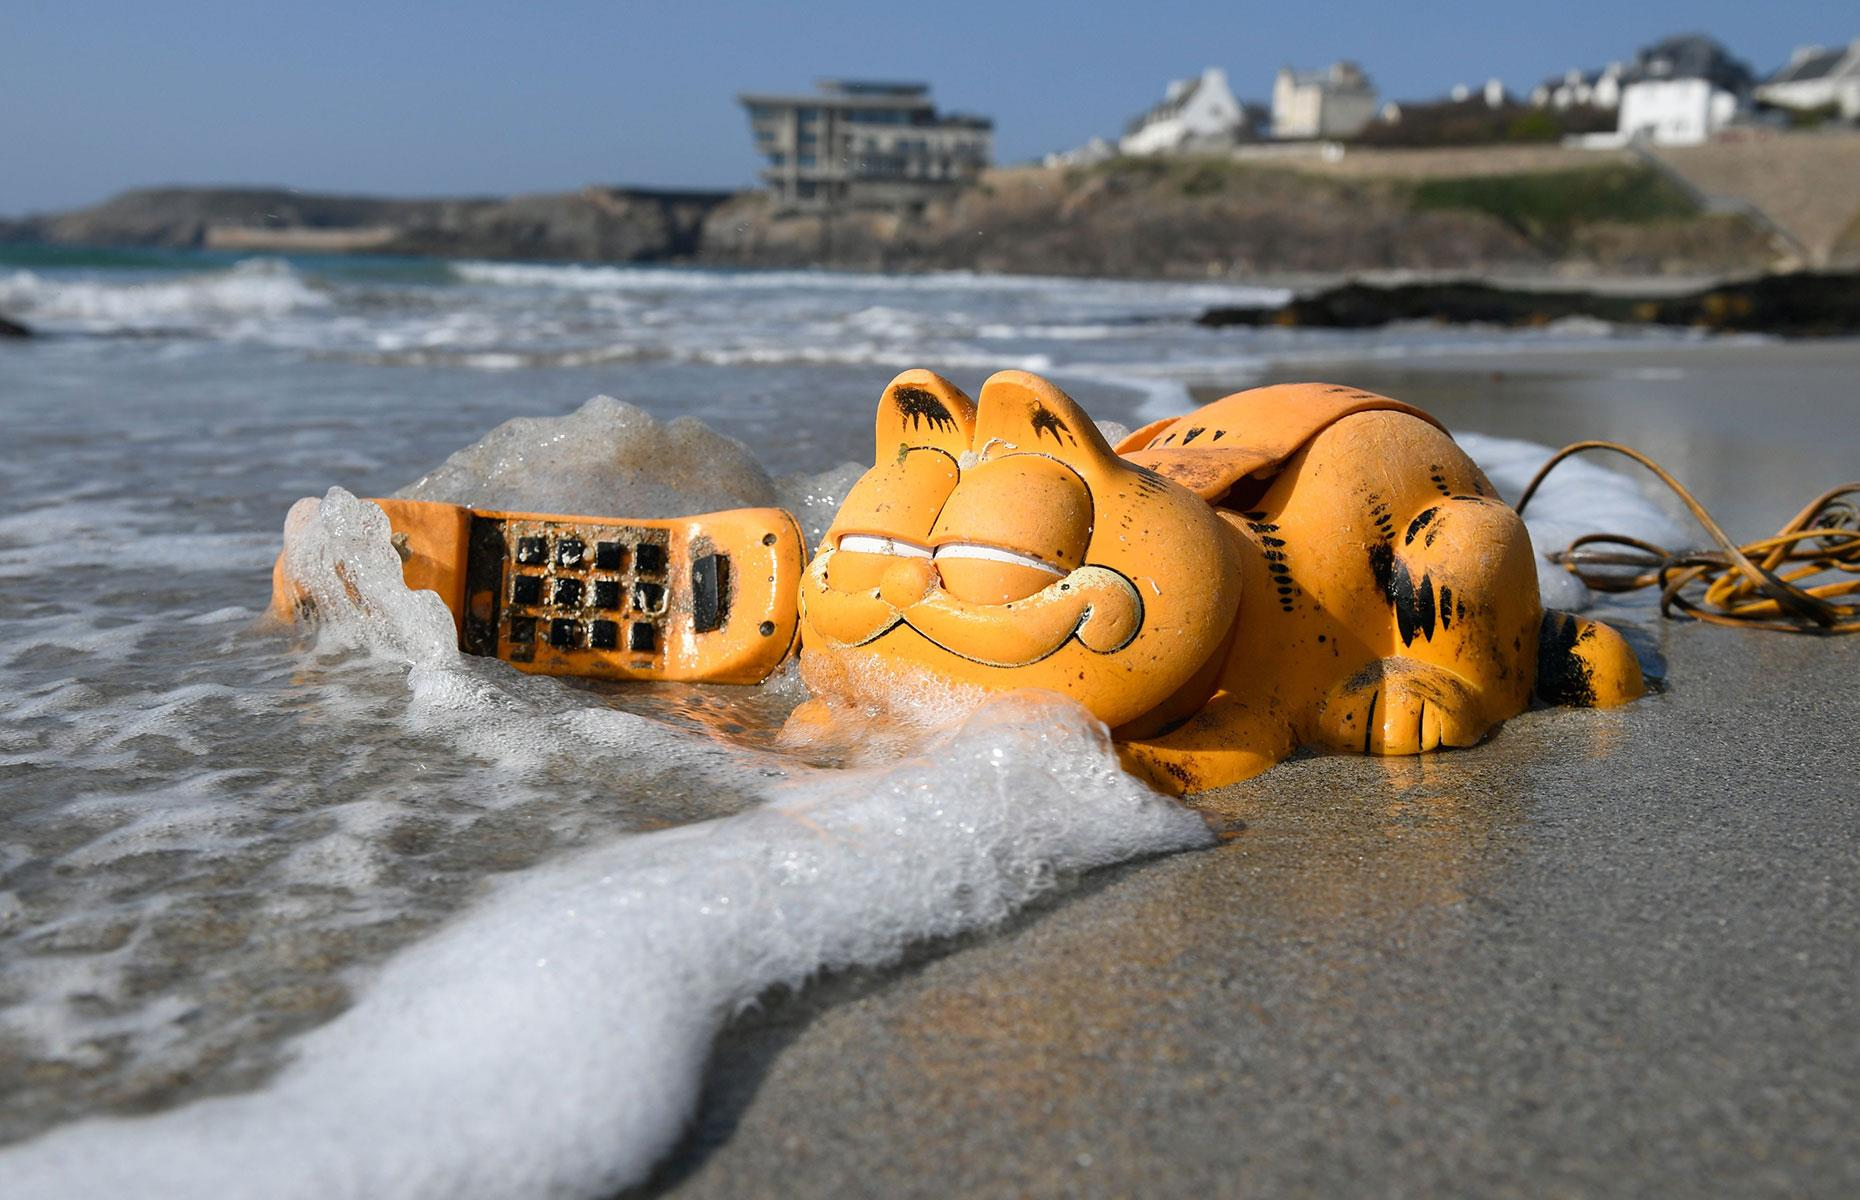 Slide 33 of 33: During the 1980s novelty plastic phones in the shape of the infamous lasagna-eating cartoon cat Garfield began appearing on beaches in Brittany. The mystery wasn't solved until March 2019, however, when a shipping container filled with the devices – washed up during a storm some 30 years before – was found in a sea cave.